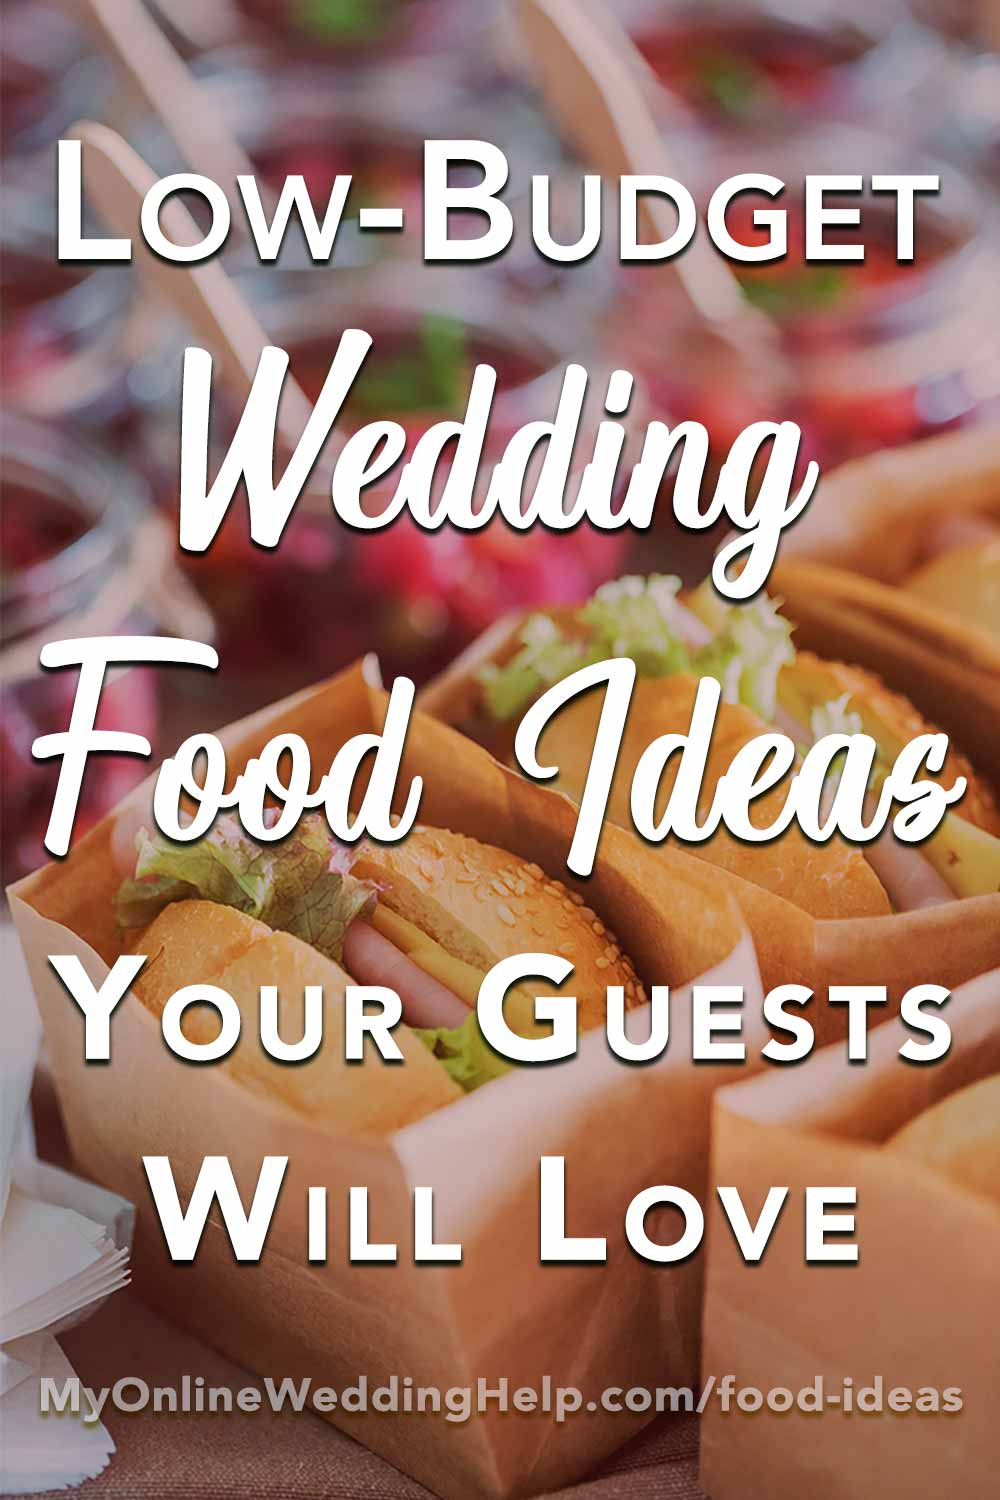 5 low-budget wedding food ideas your guests will love